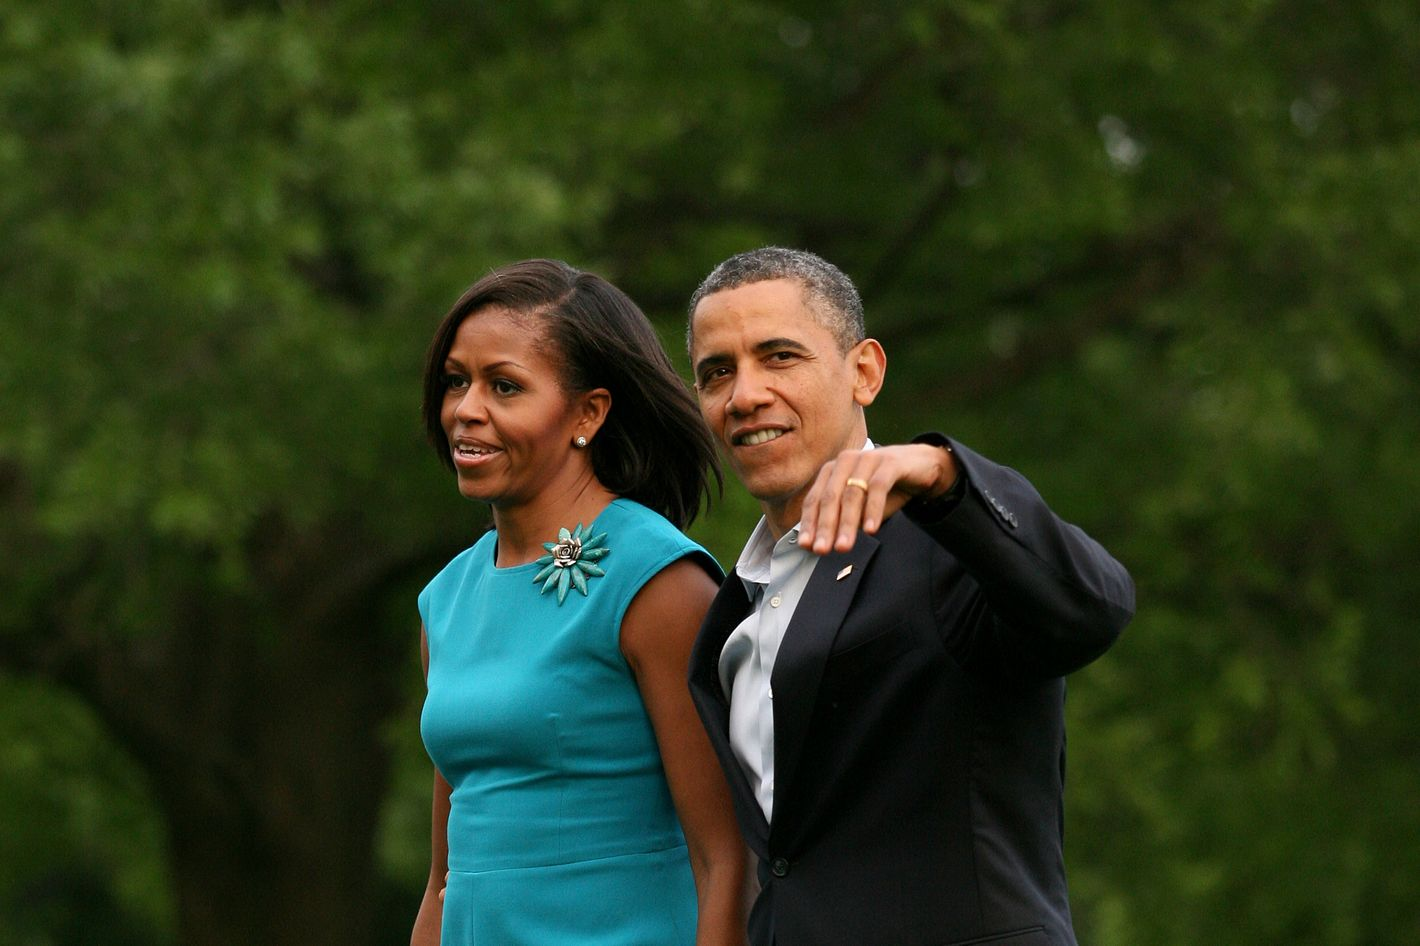 U.S. President Barack Obama and first lady Michelle Obama return to the South Lawn of the White House following a day trip to Ohio and Virginia on May 5, 2012 in Washington, DC. President Obama officially kicked off his 2012 campaign for reelection today.